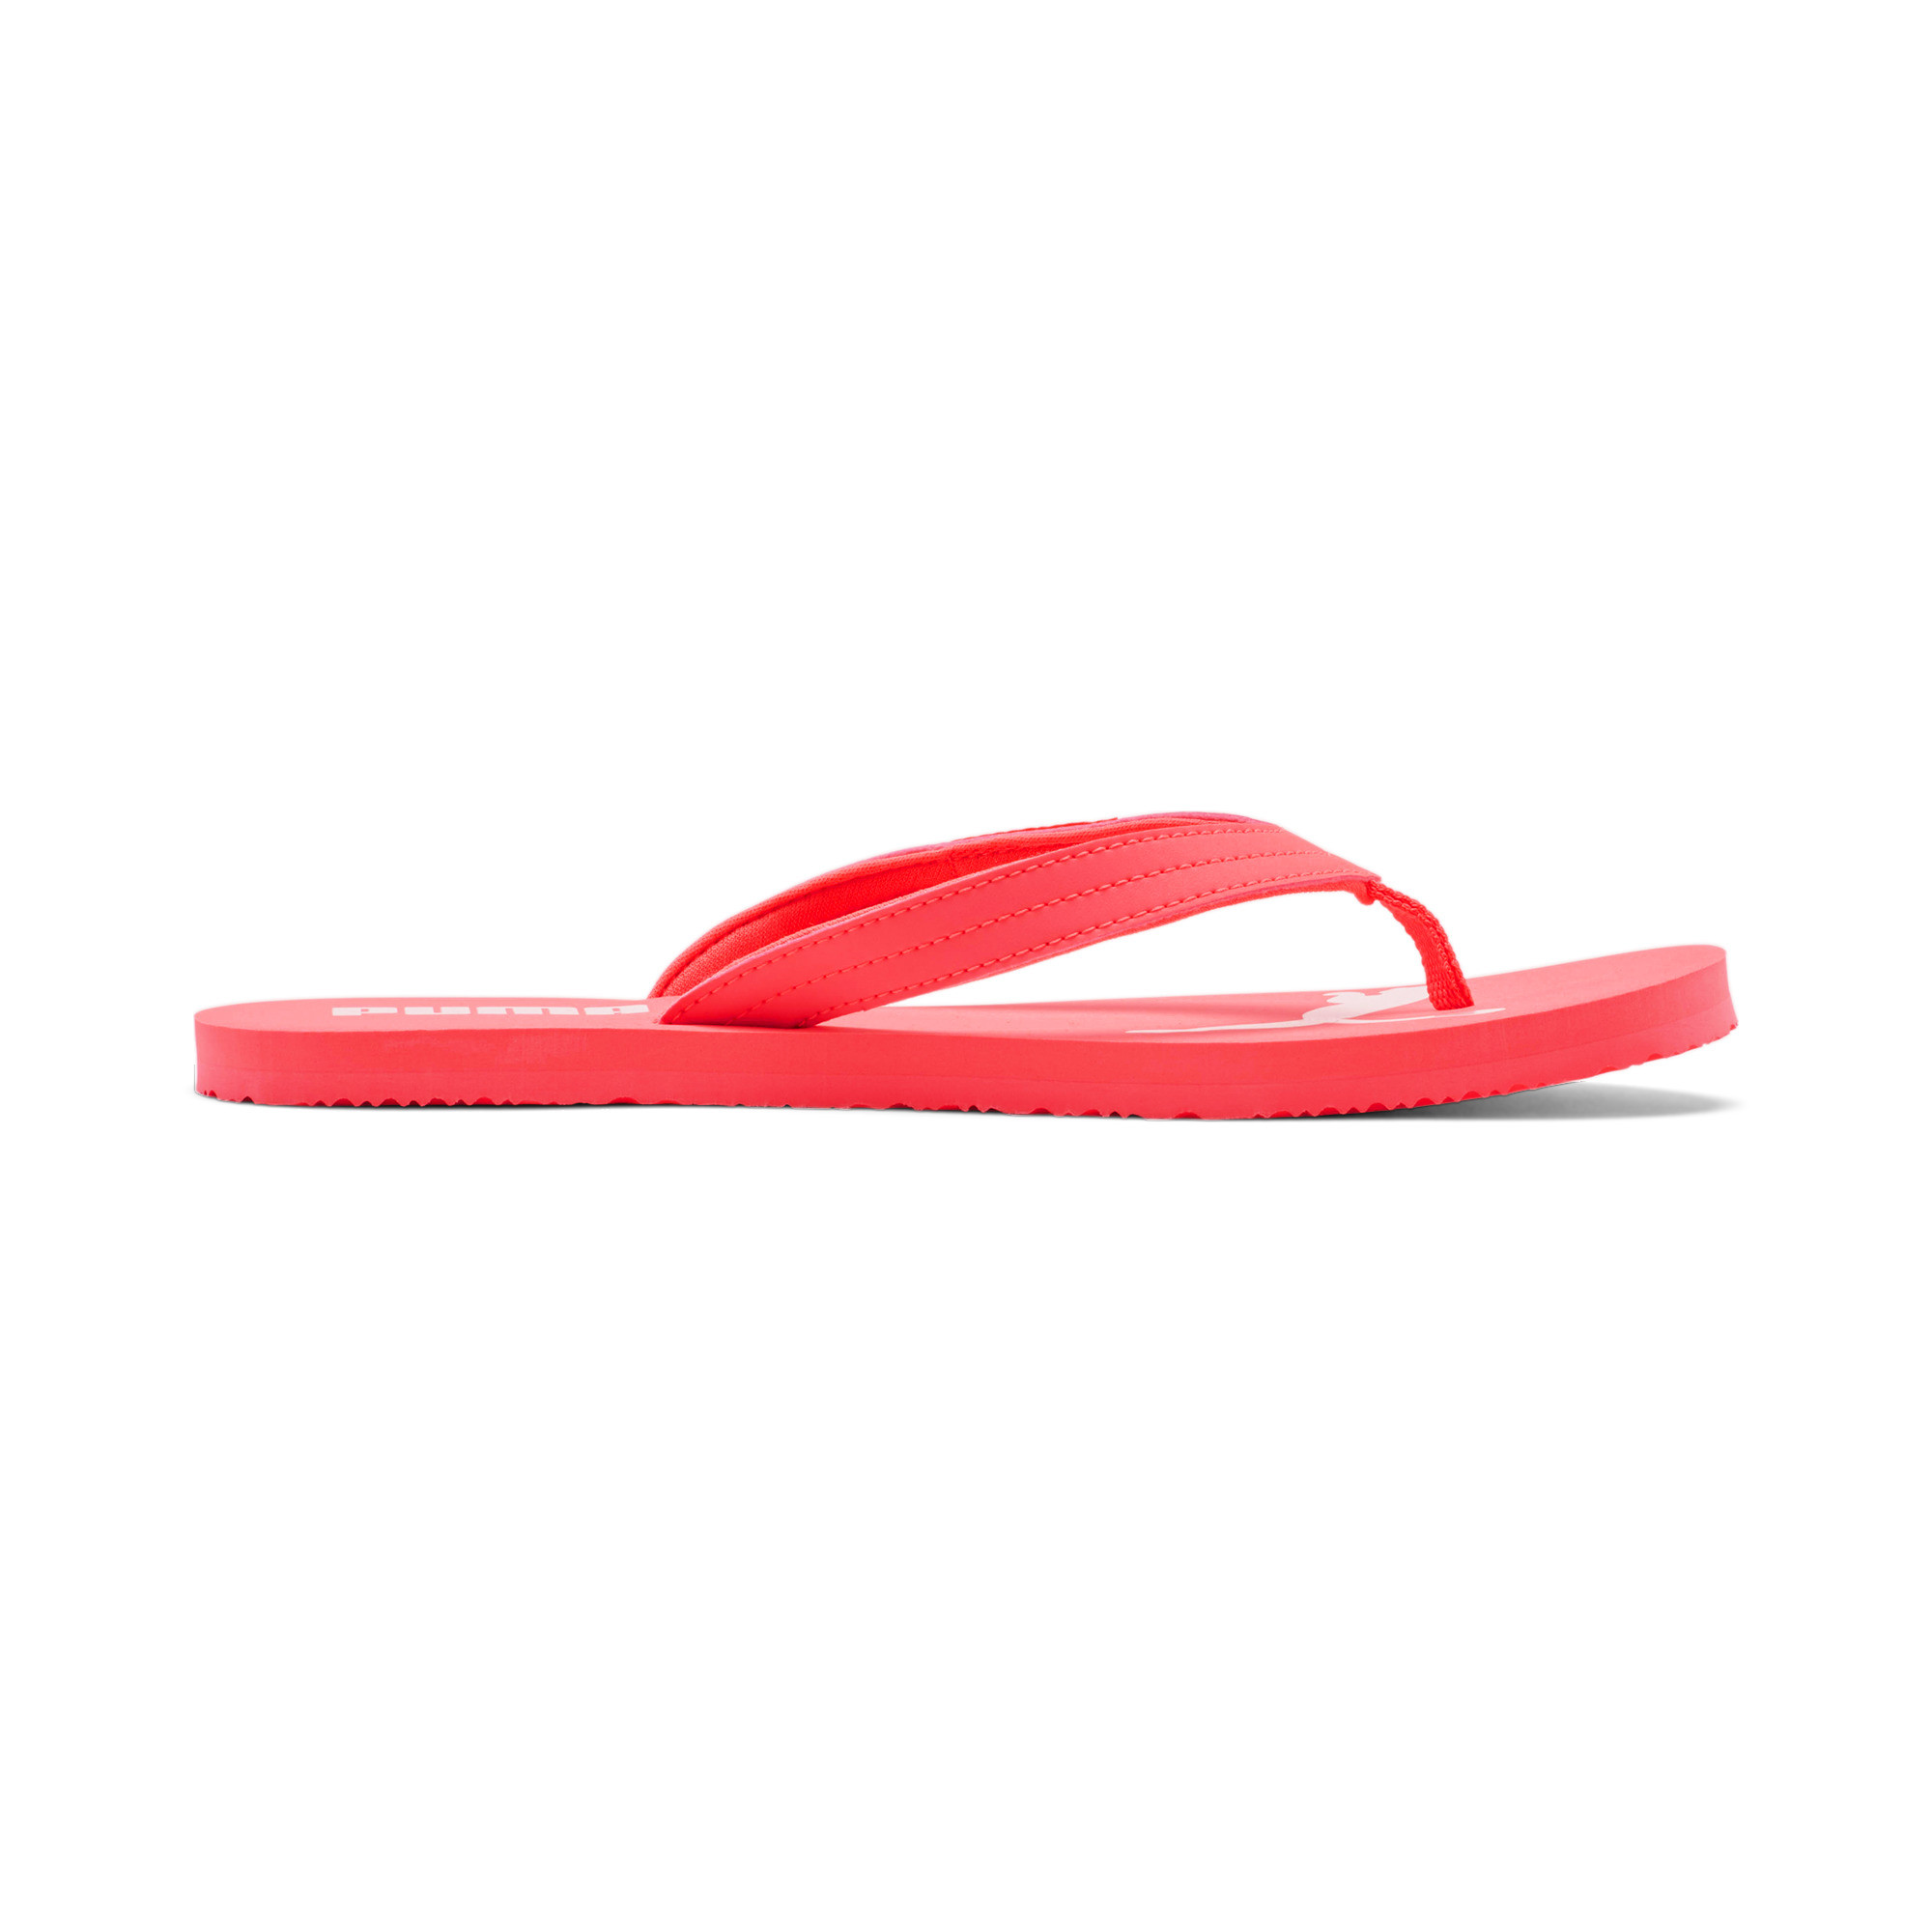 PUMA-Women-039-s-Cozy-Flip-Sandals thumbnail 18